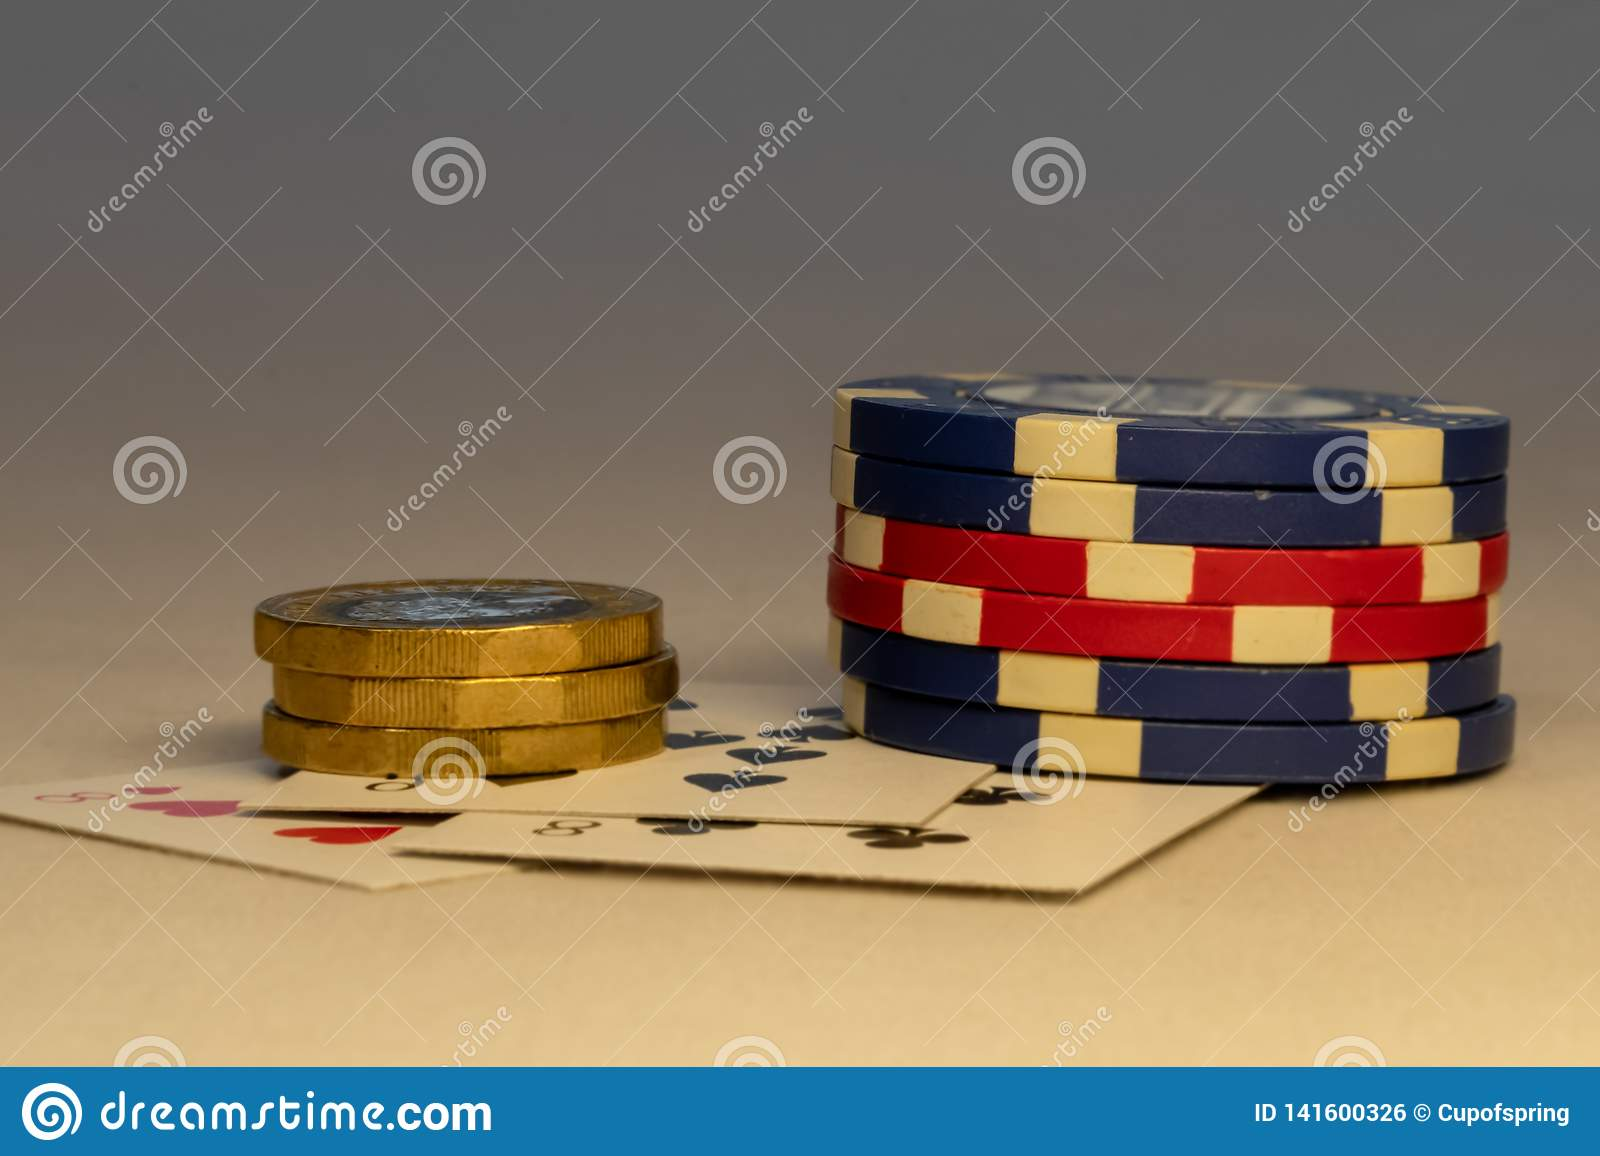 Bunch of chips laying down on table with coins and cards in the background. Casino and gambling concepts